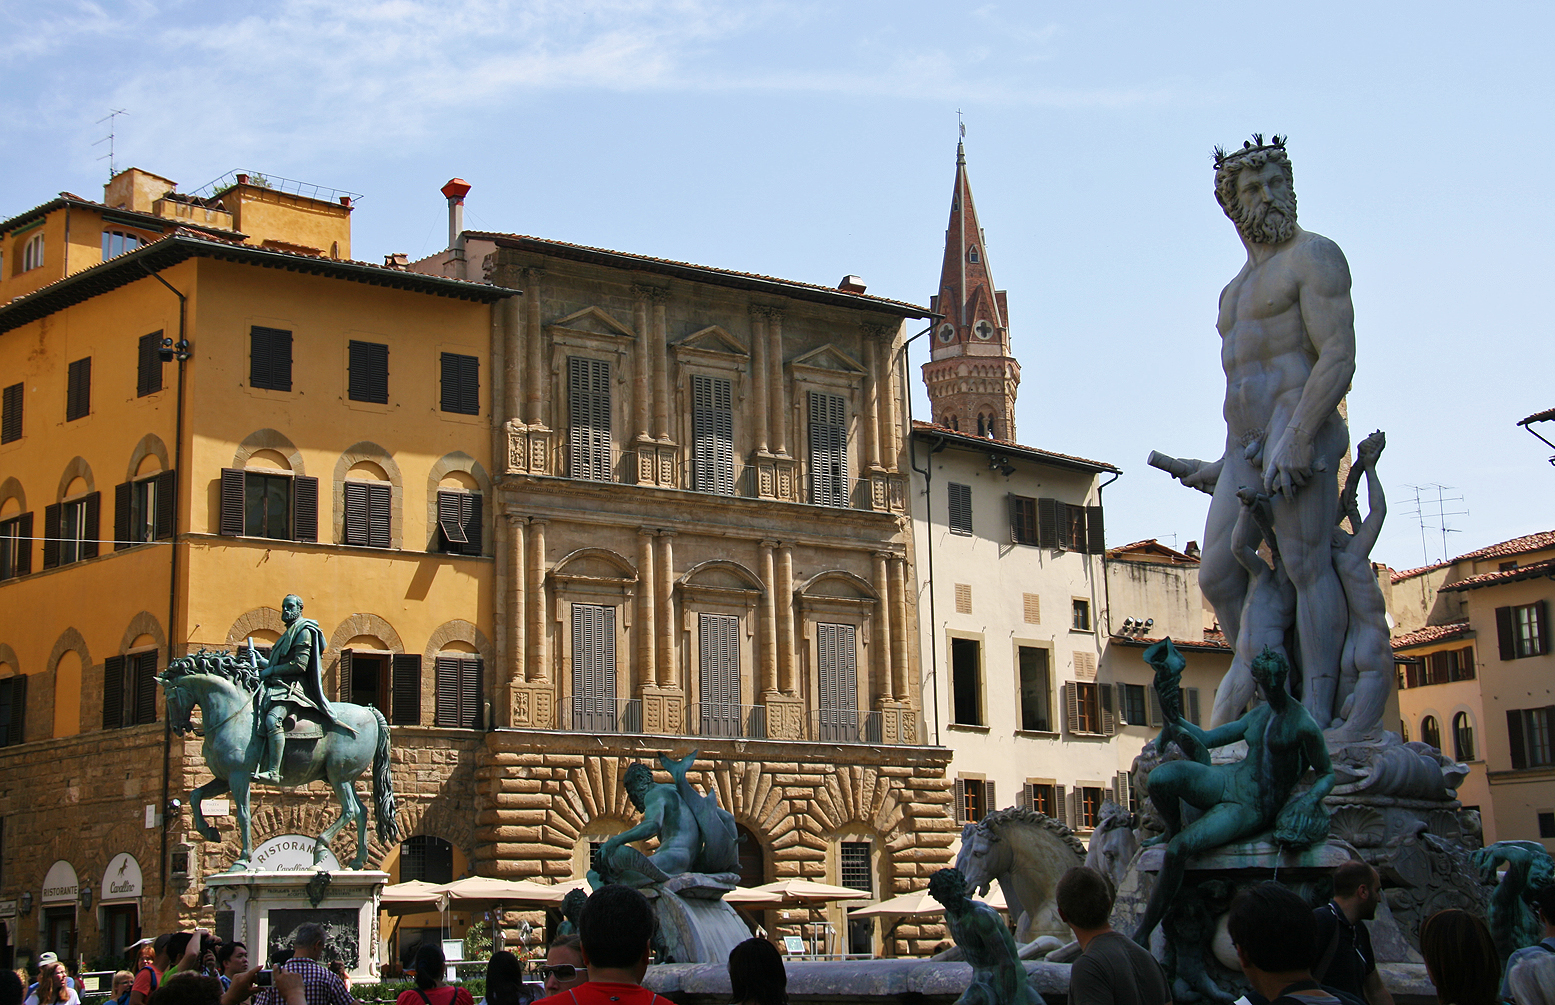 Piazza della Signoria, with the Fountain of Neptune in the front.